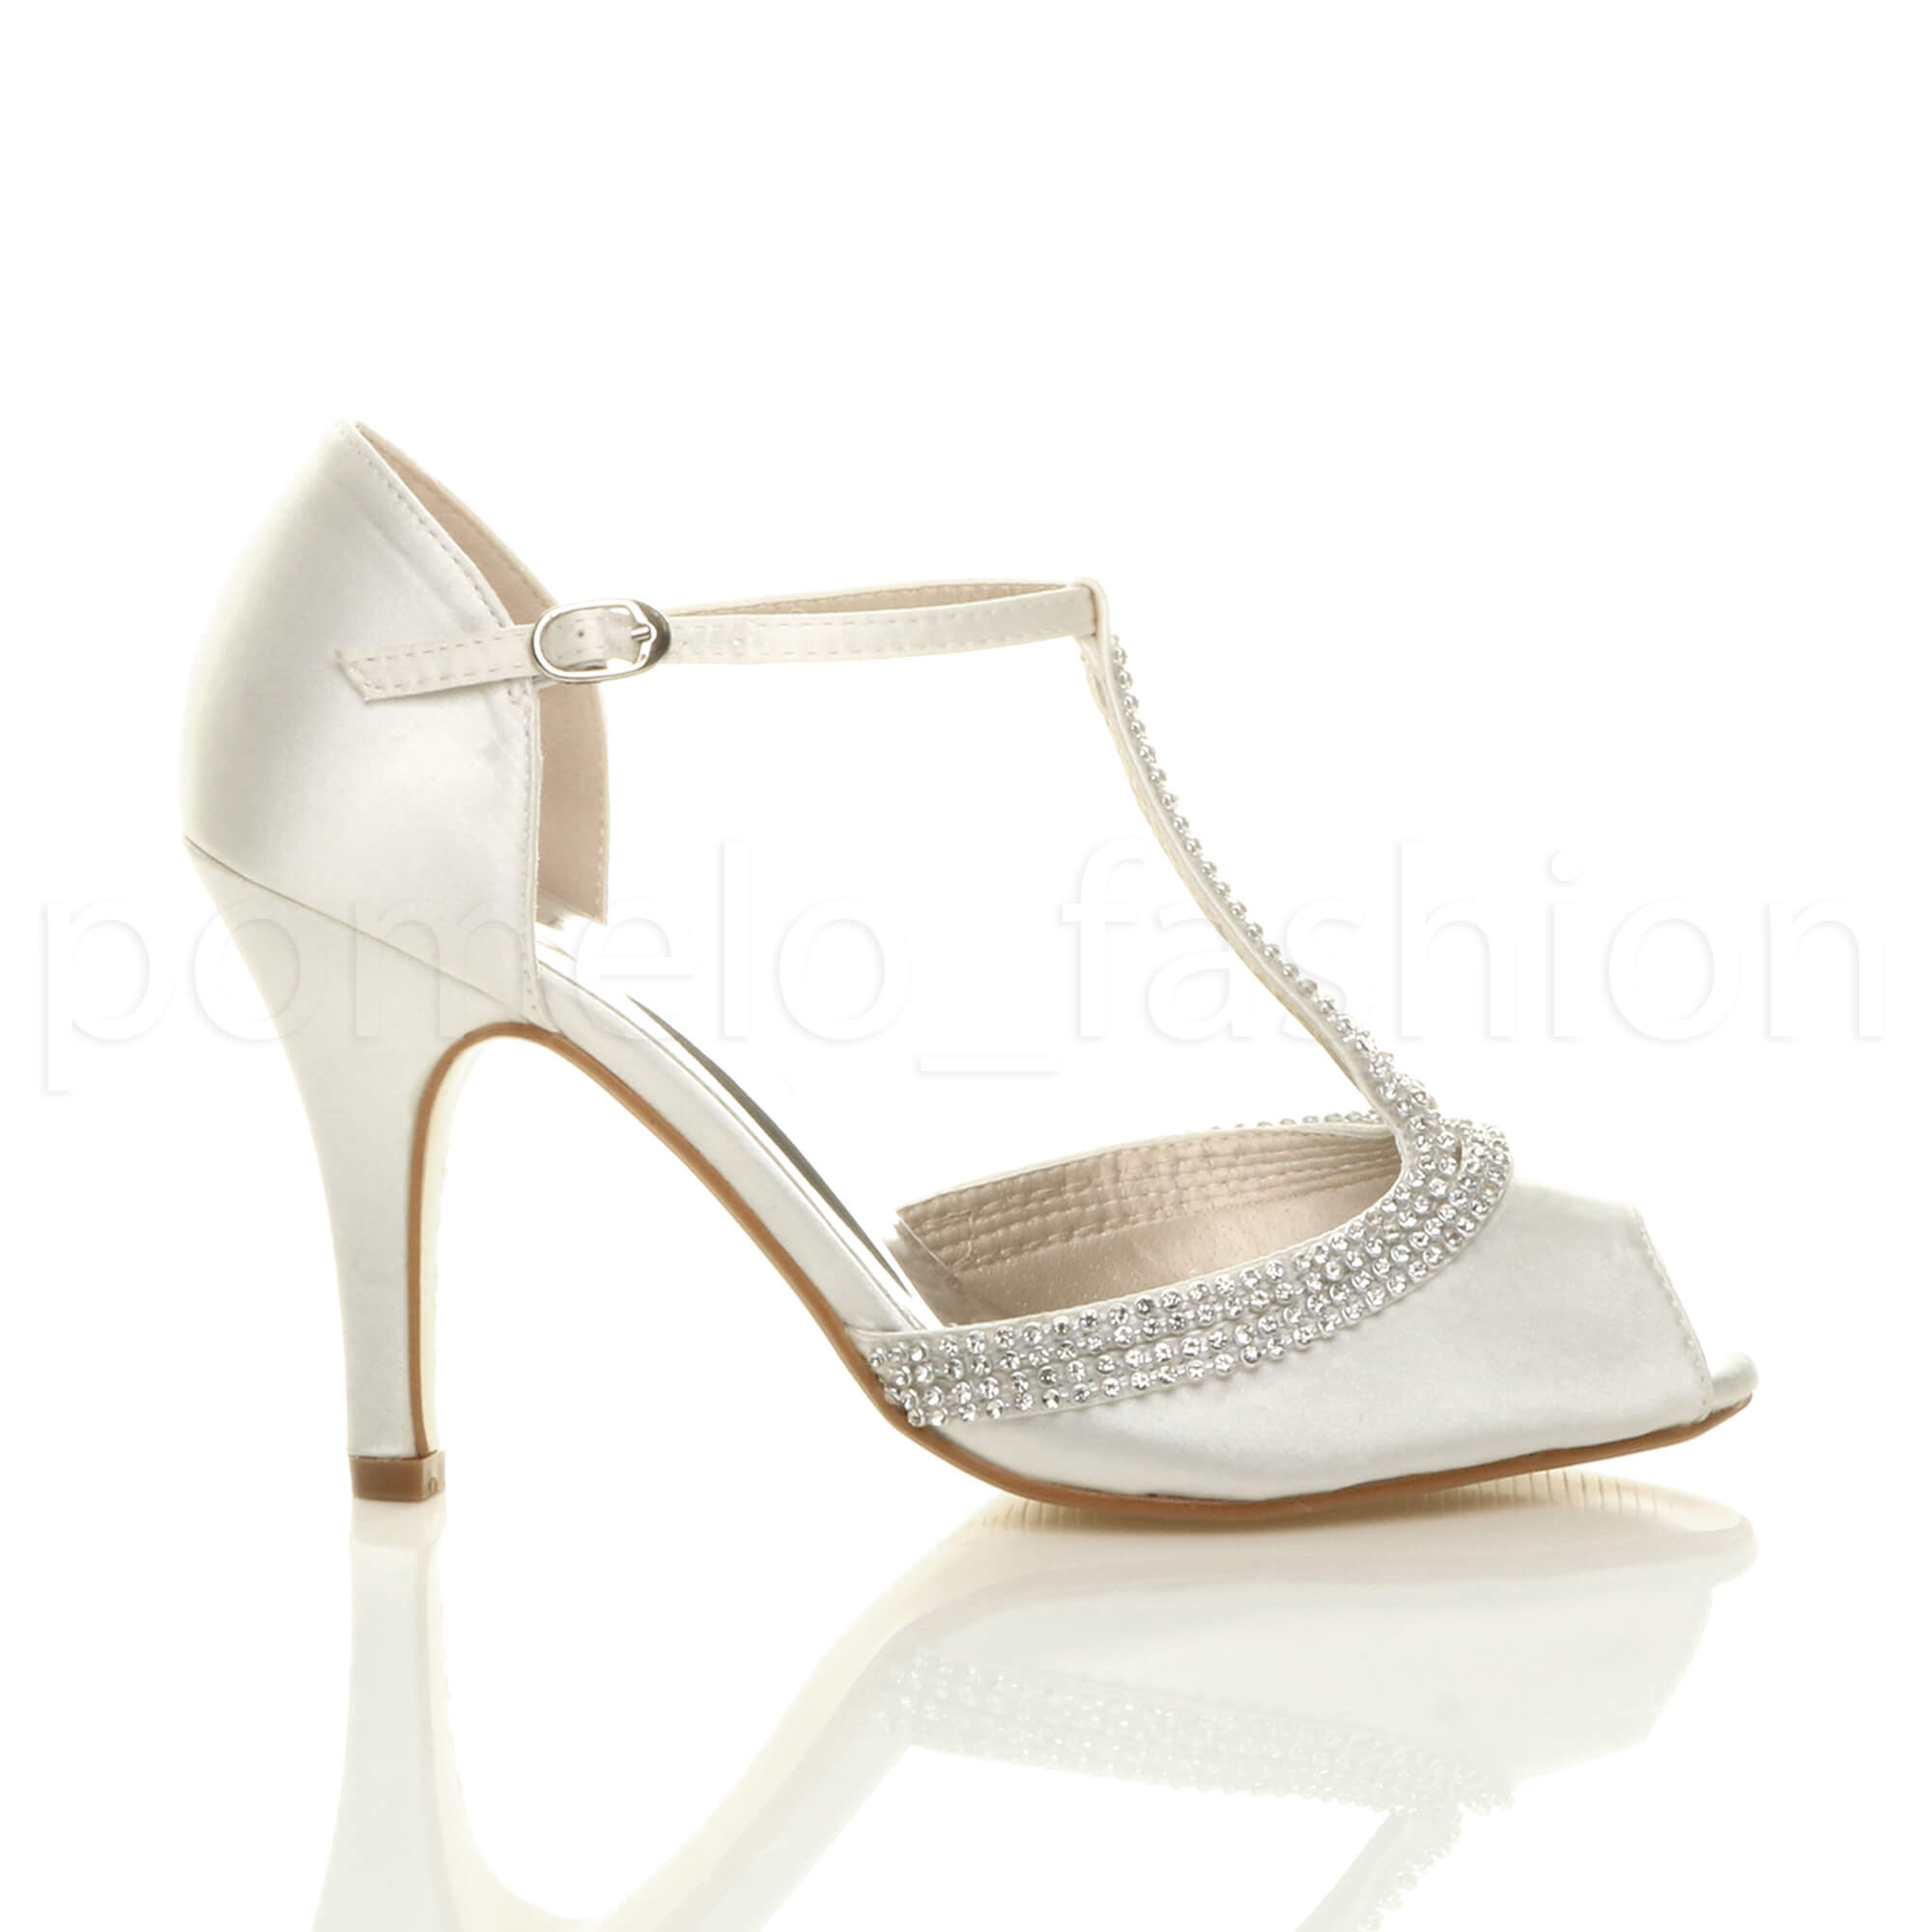 WOMENS LADIES HIGH HEEL PEEPTOE DIAMANTE T-BAR WEDDING